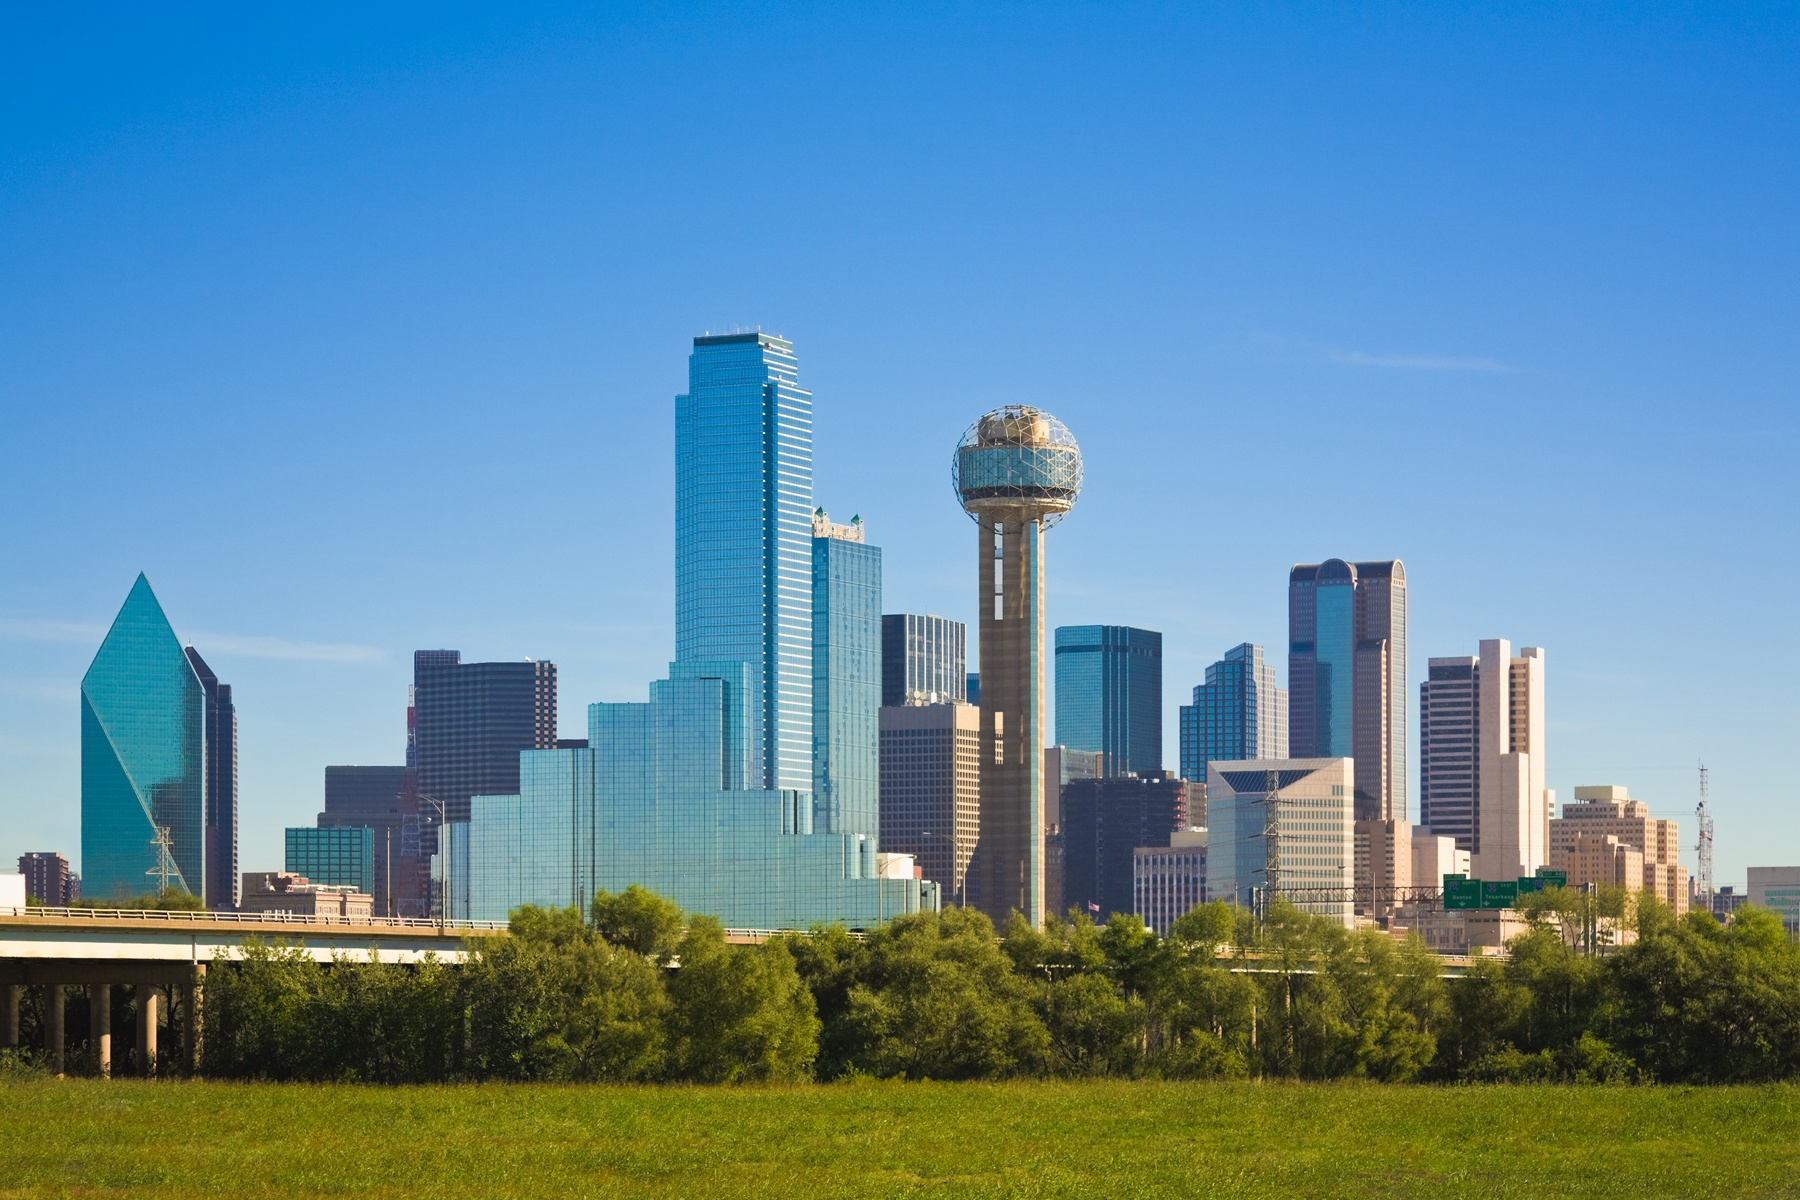 Dallas city skyline, Dallas, Texas